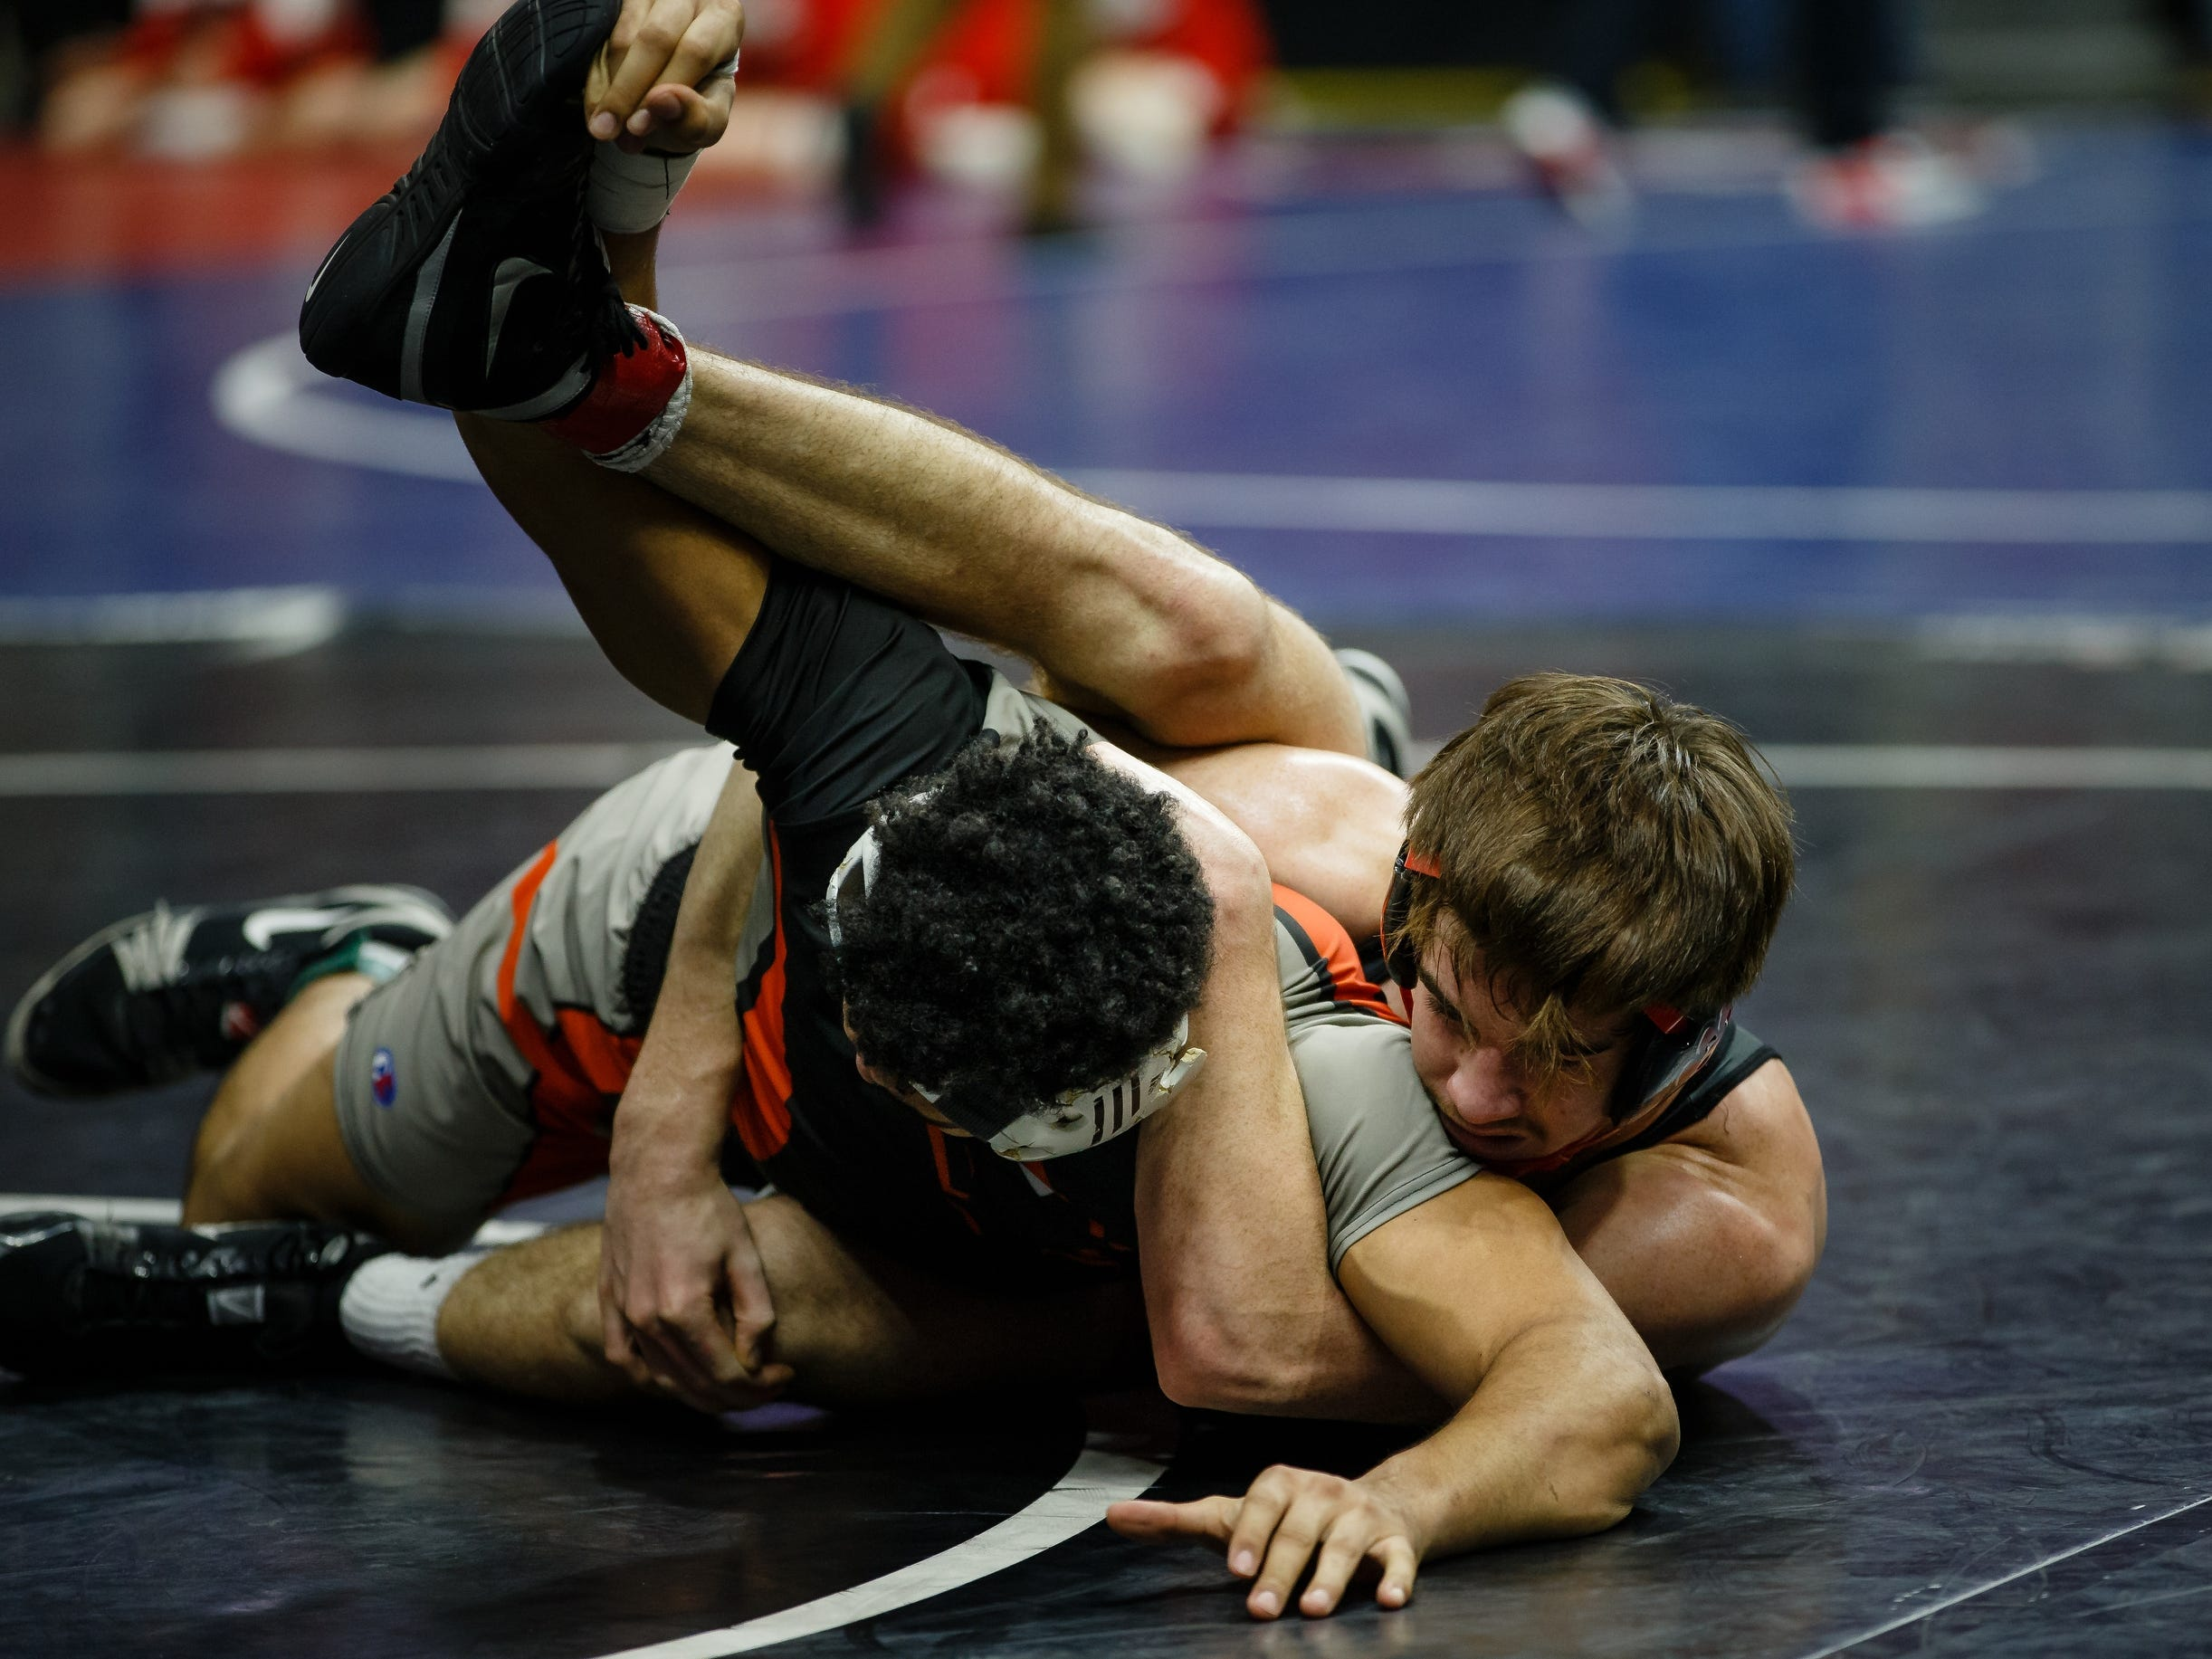 Nolan Harsh of ADM wrestles Tristin Westphal of Washington during their class 2A 182 pound state championship semi-final match on Friday, Feb. 15, 2019 in Des Moines. Tristin Westphal moves onto the finals.